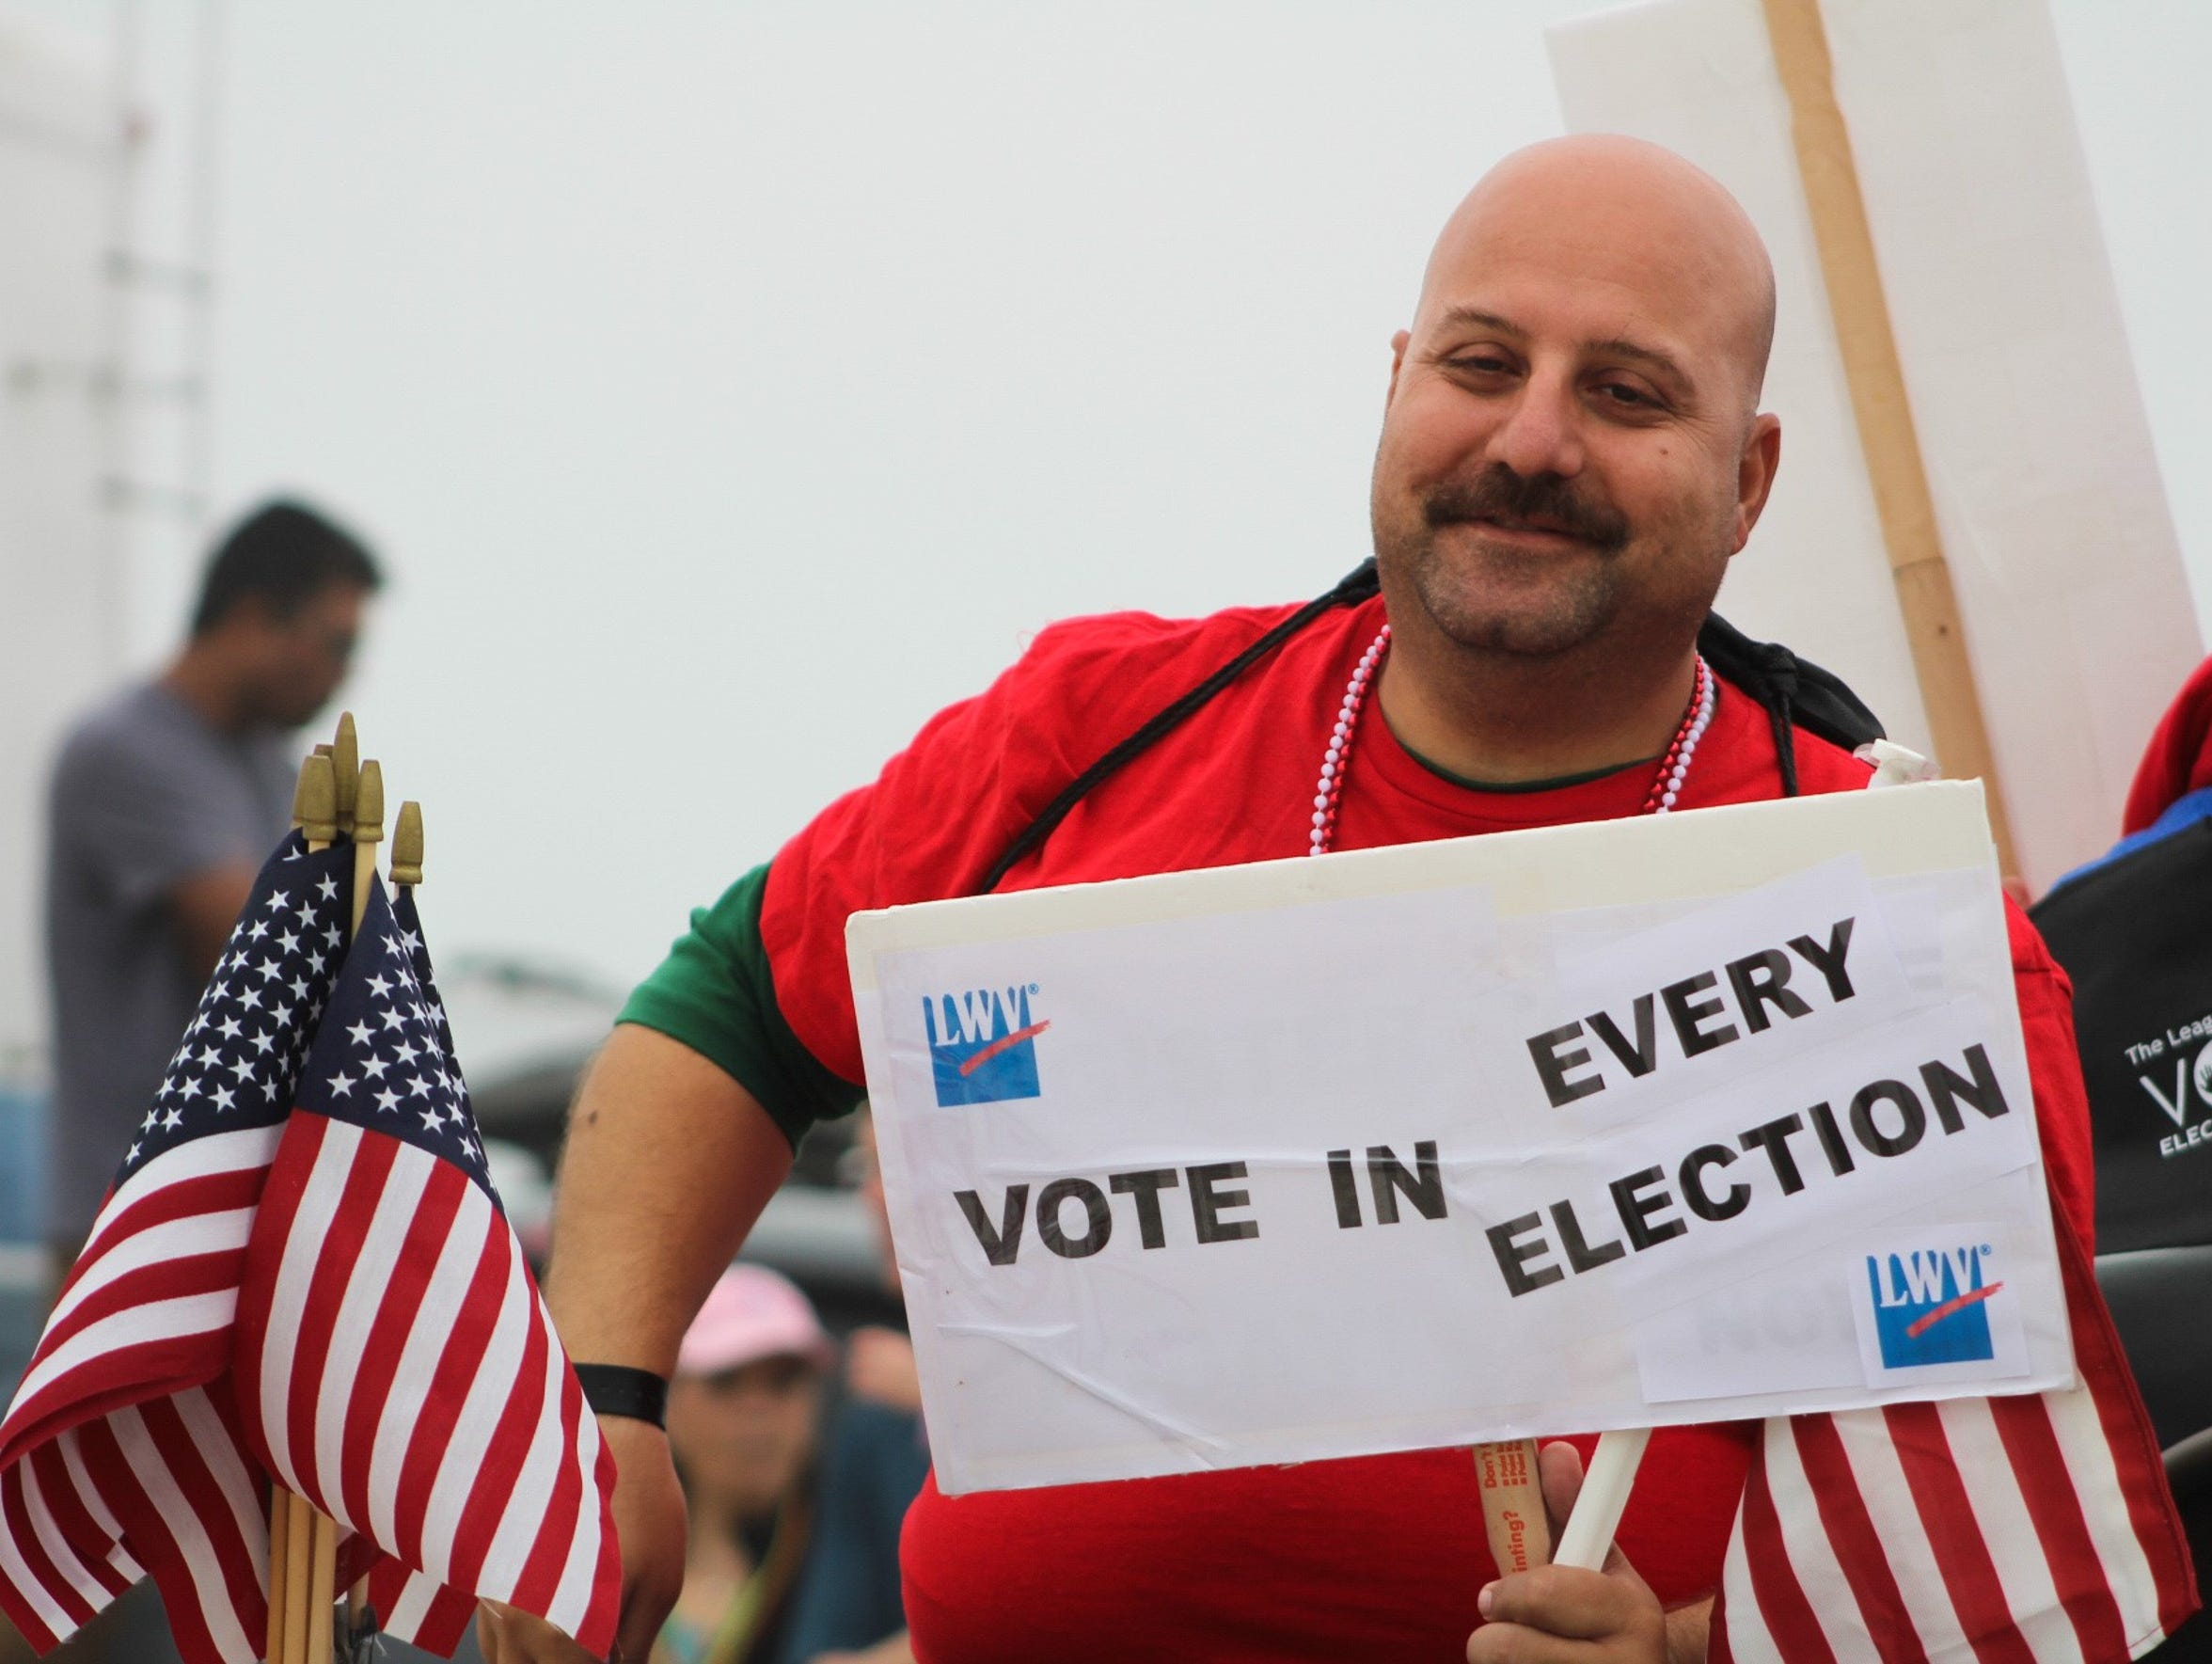 Election Day is Tuesday, Nov. 6. Early voting is from Monday, Oct. 22 to Friday, Nov. 2.